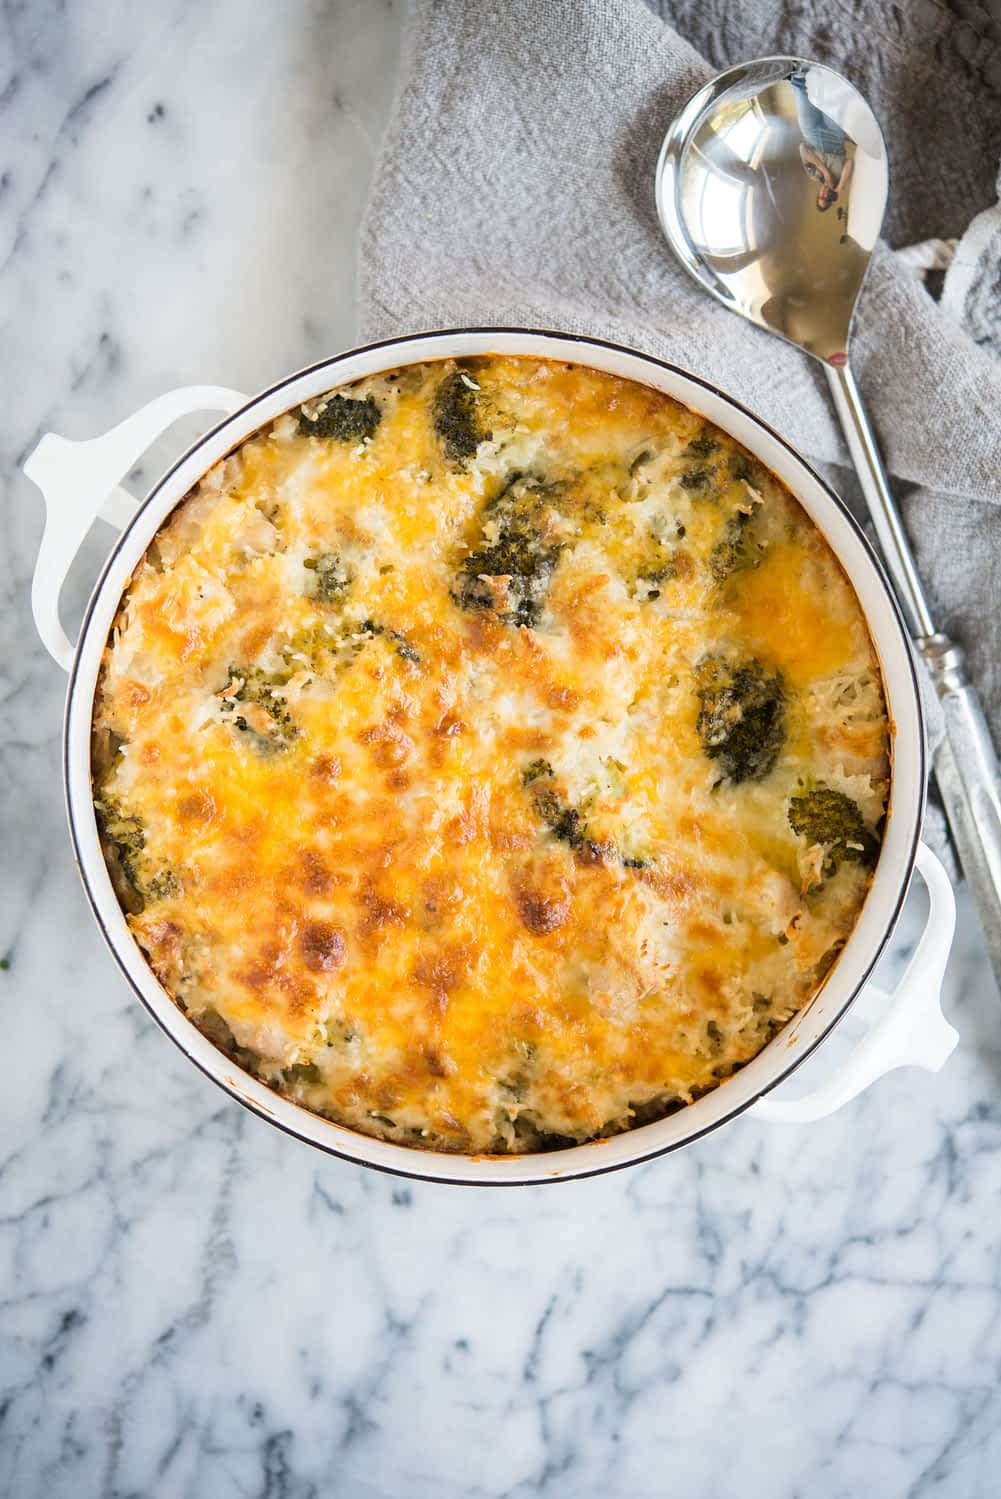 chicken broccoli and rice casserole with cheese in a white casserole dish on a marble surface